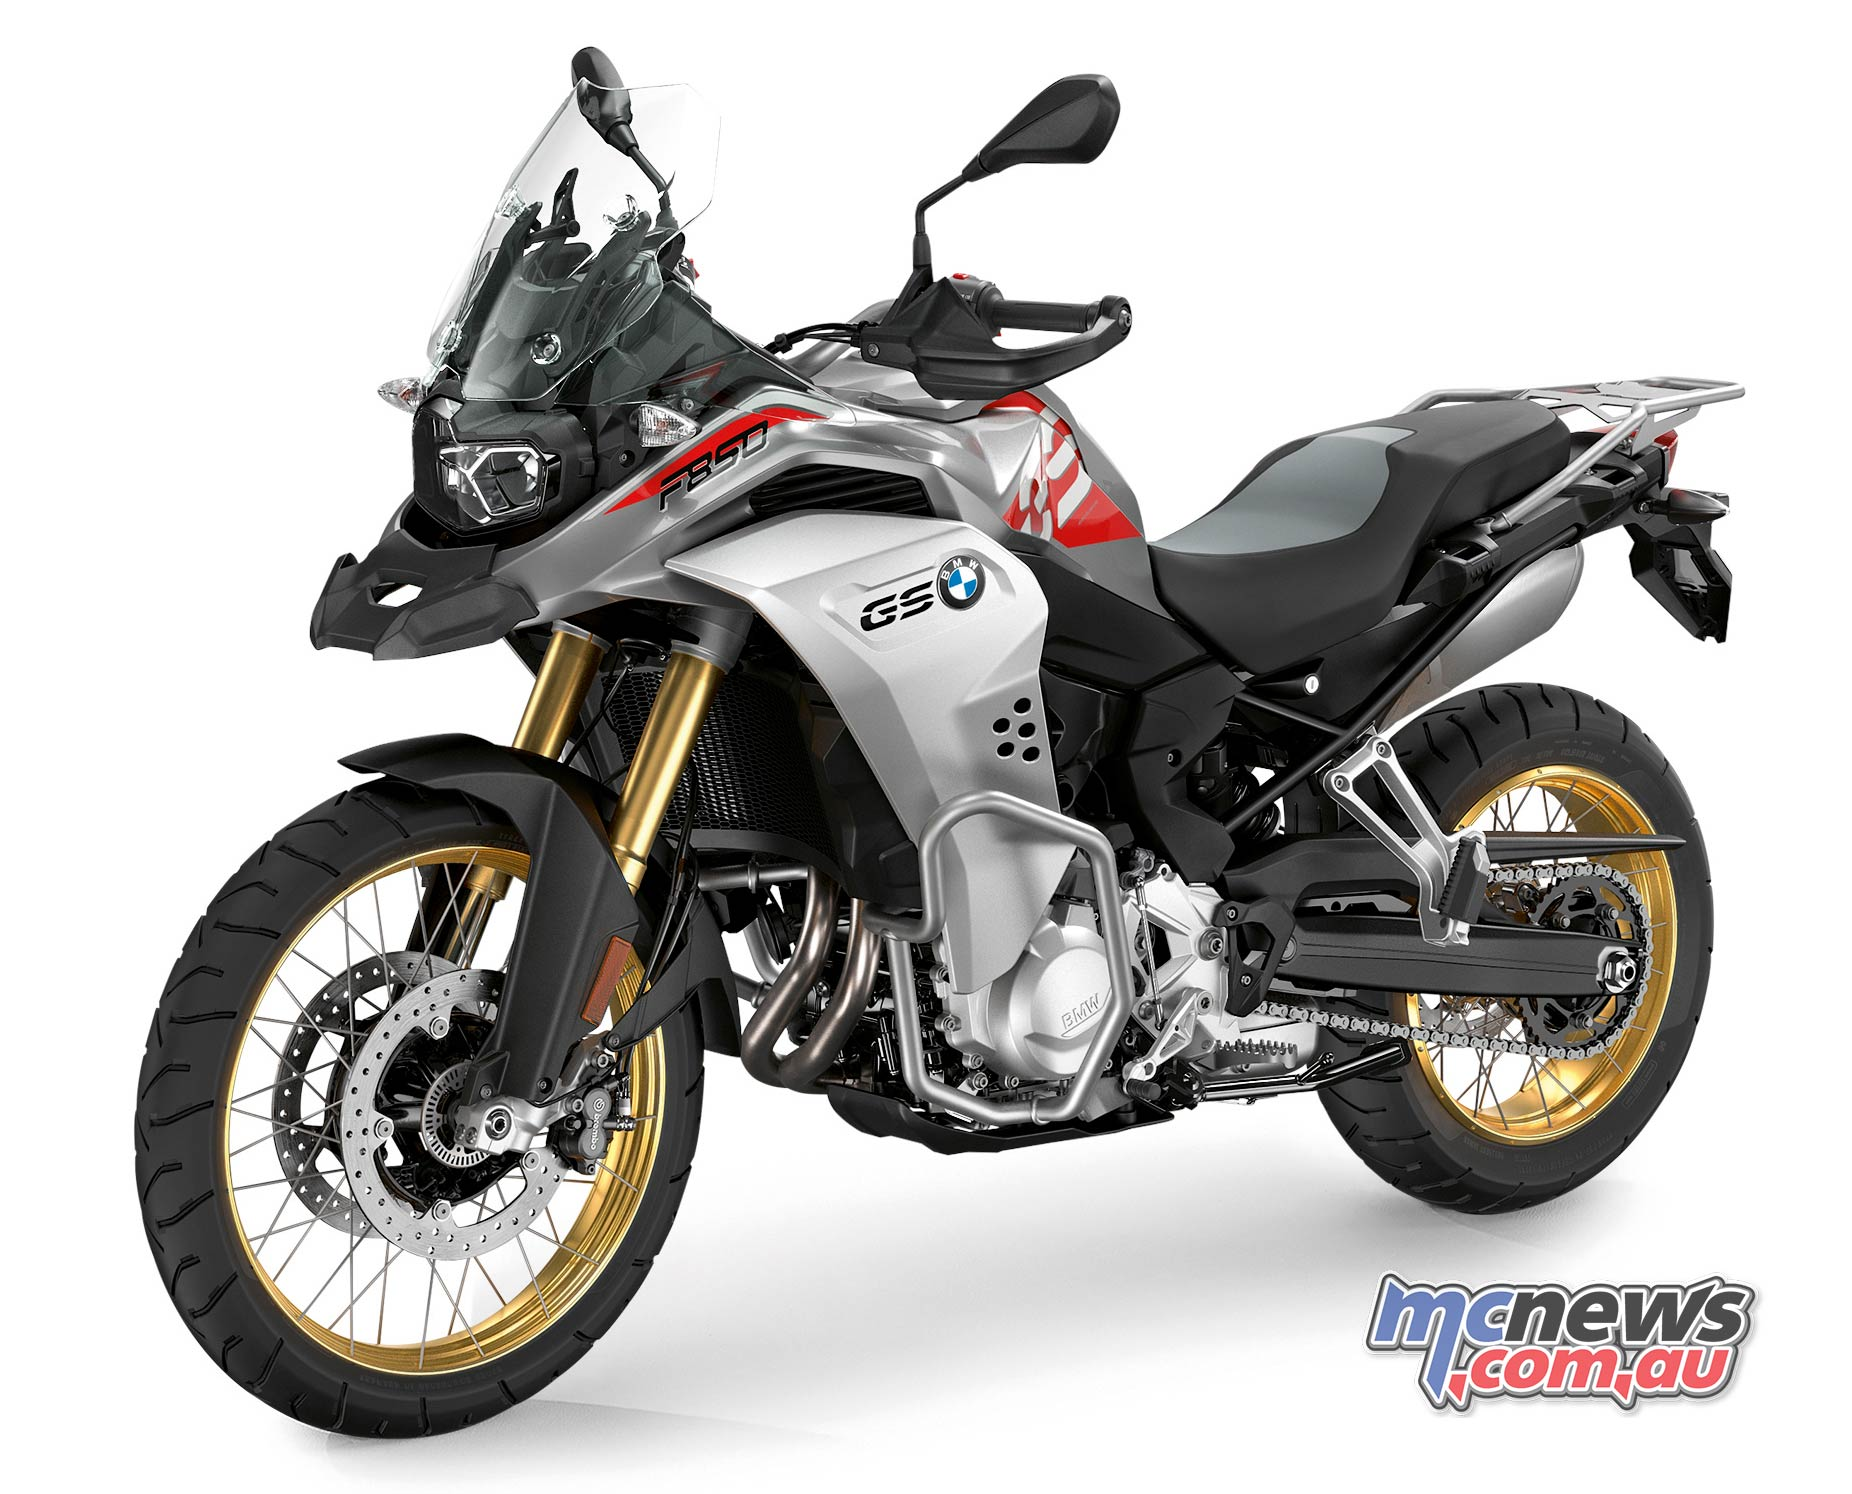 2019 BMW F 850 GS Adventure | MCNews com au